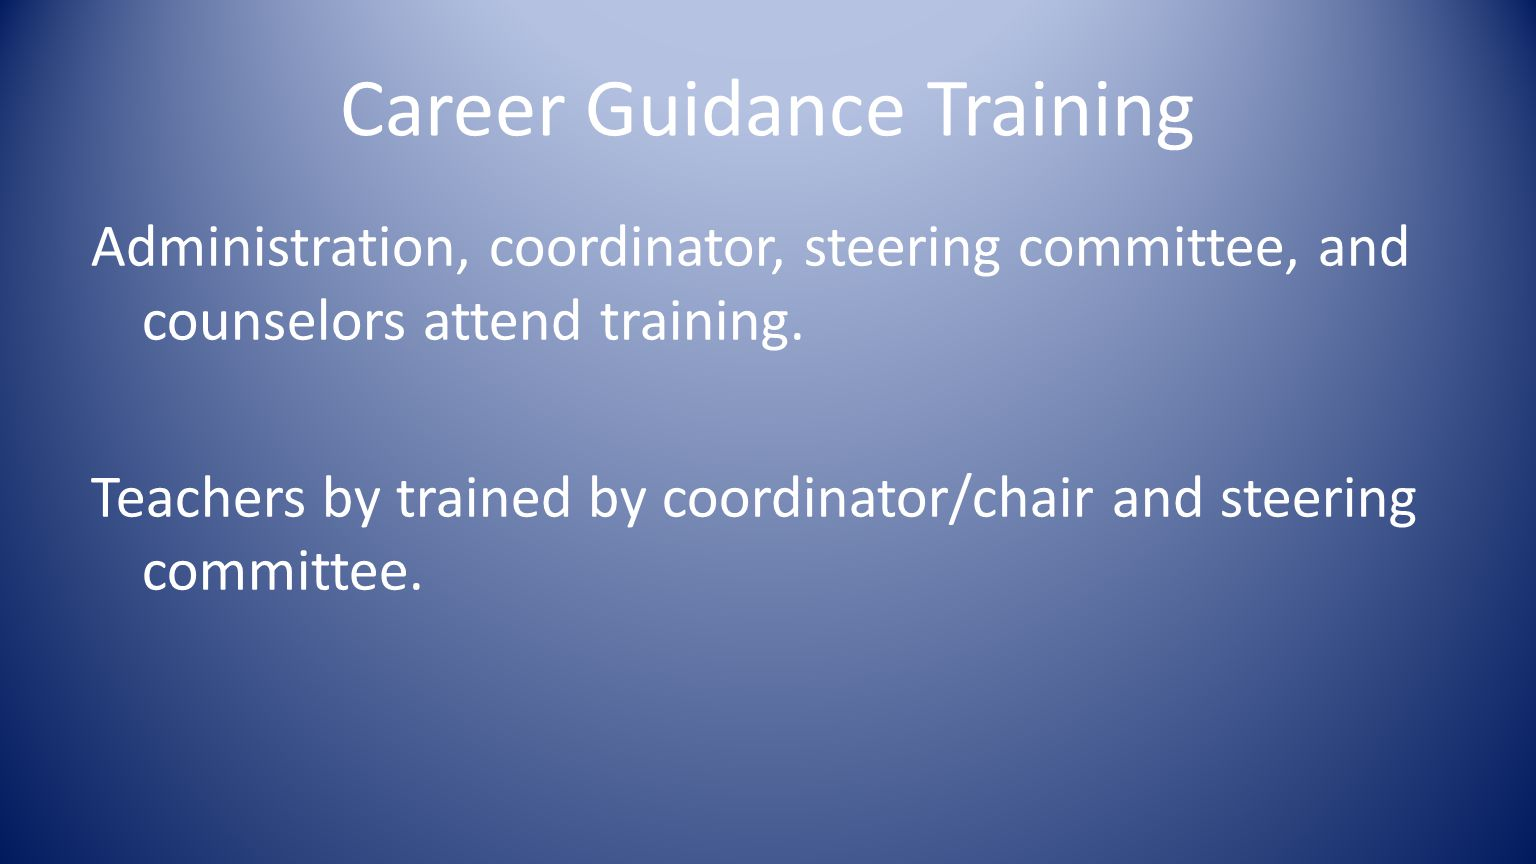 Career Guidance Training Administration, coordinator, steering committee, and counselors attend training.